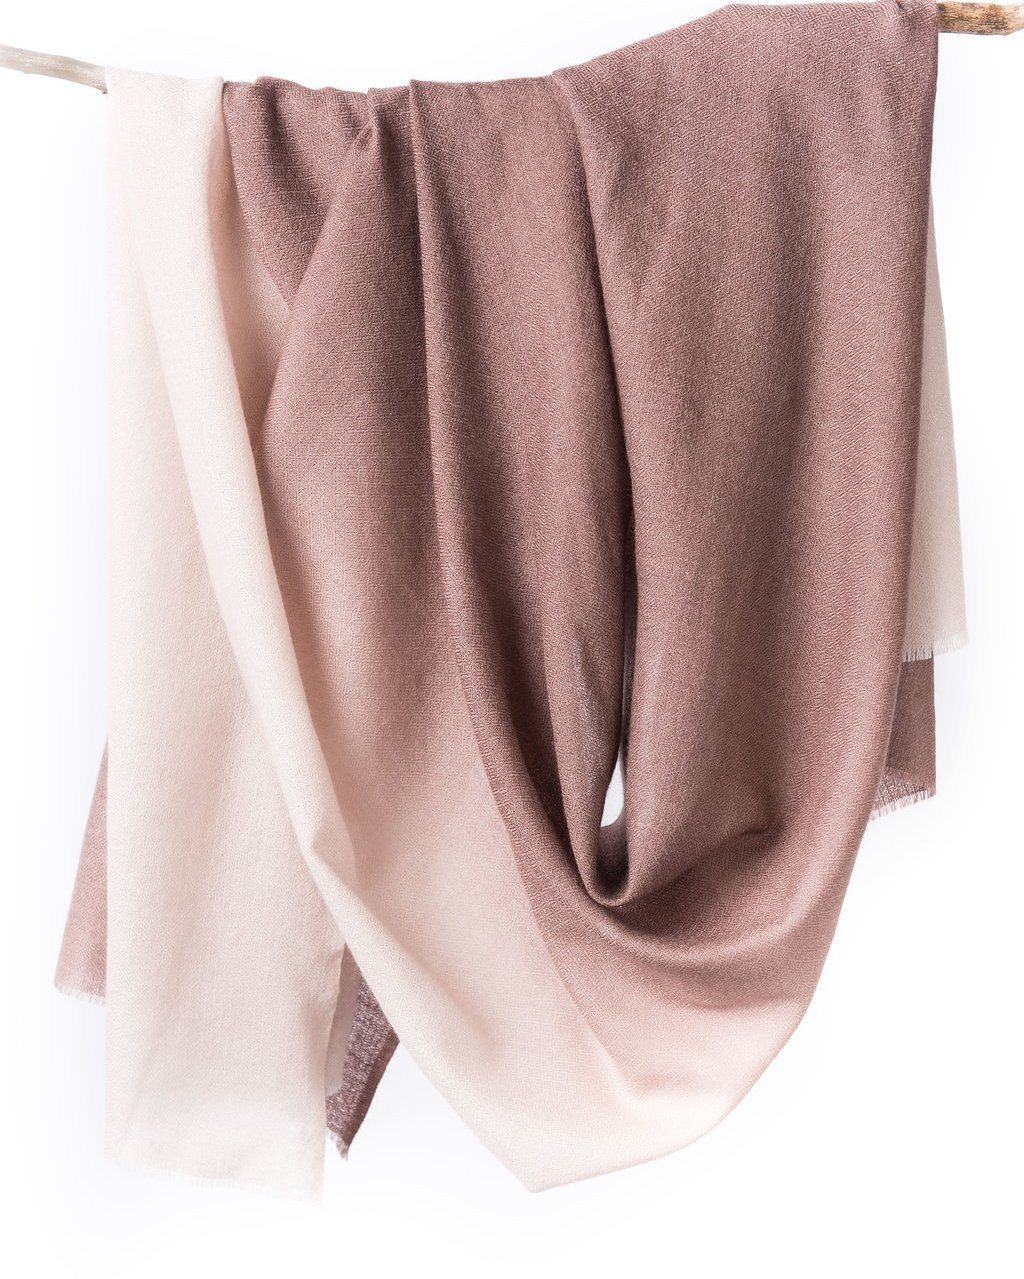 Bloom & Give Coco Scarf - Lavender Scarves Bloom & Give